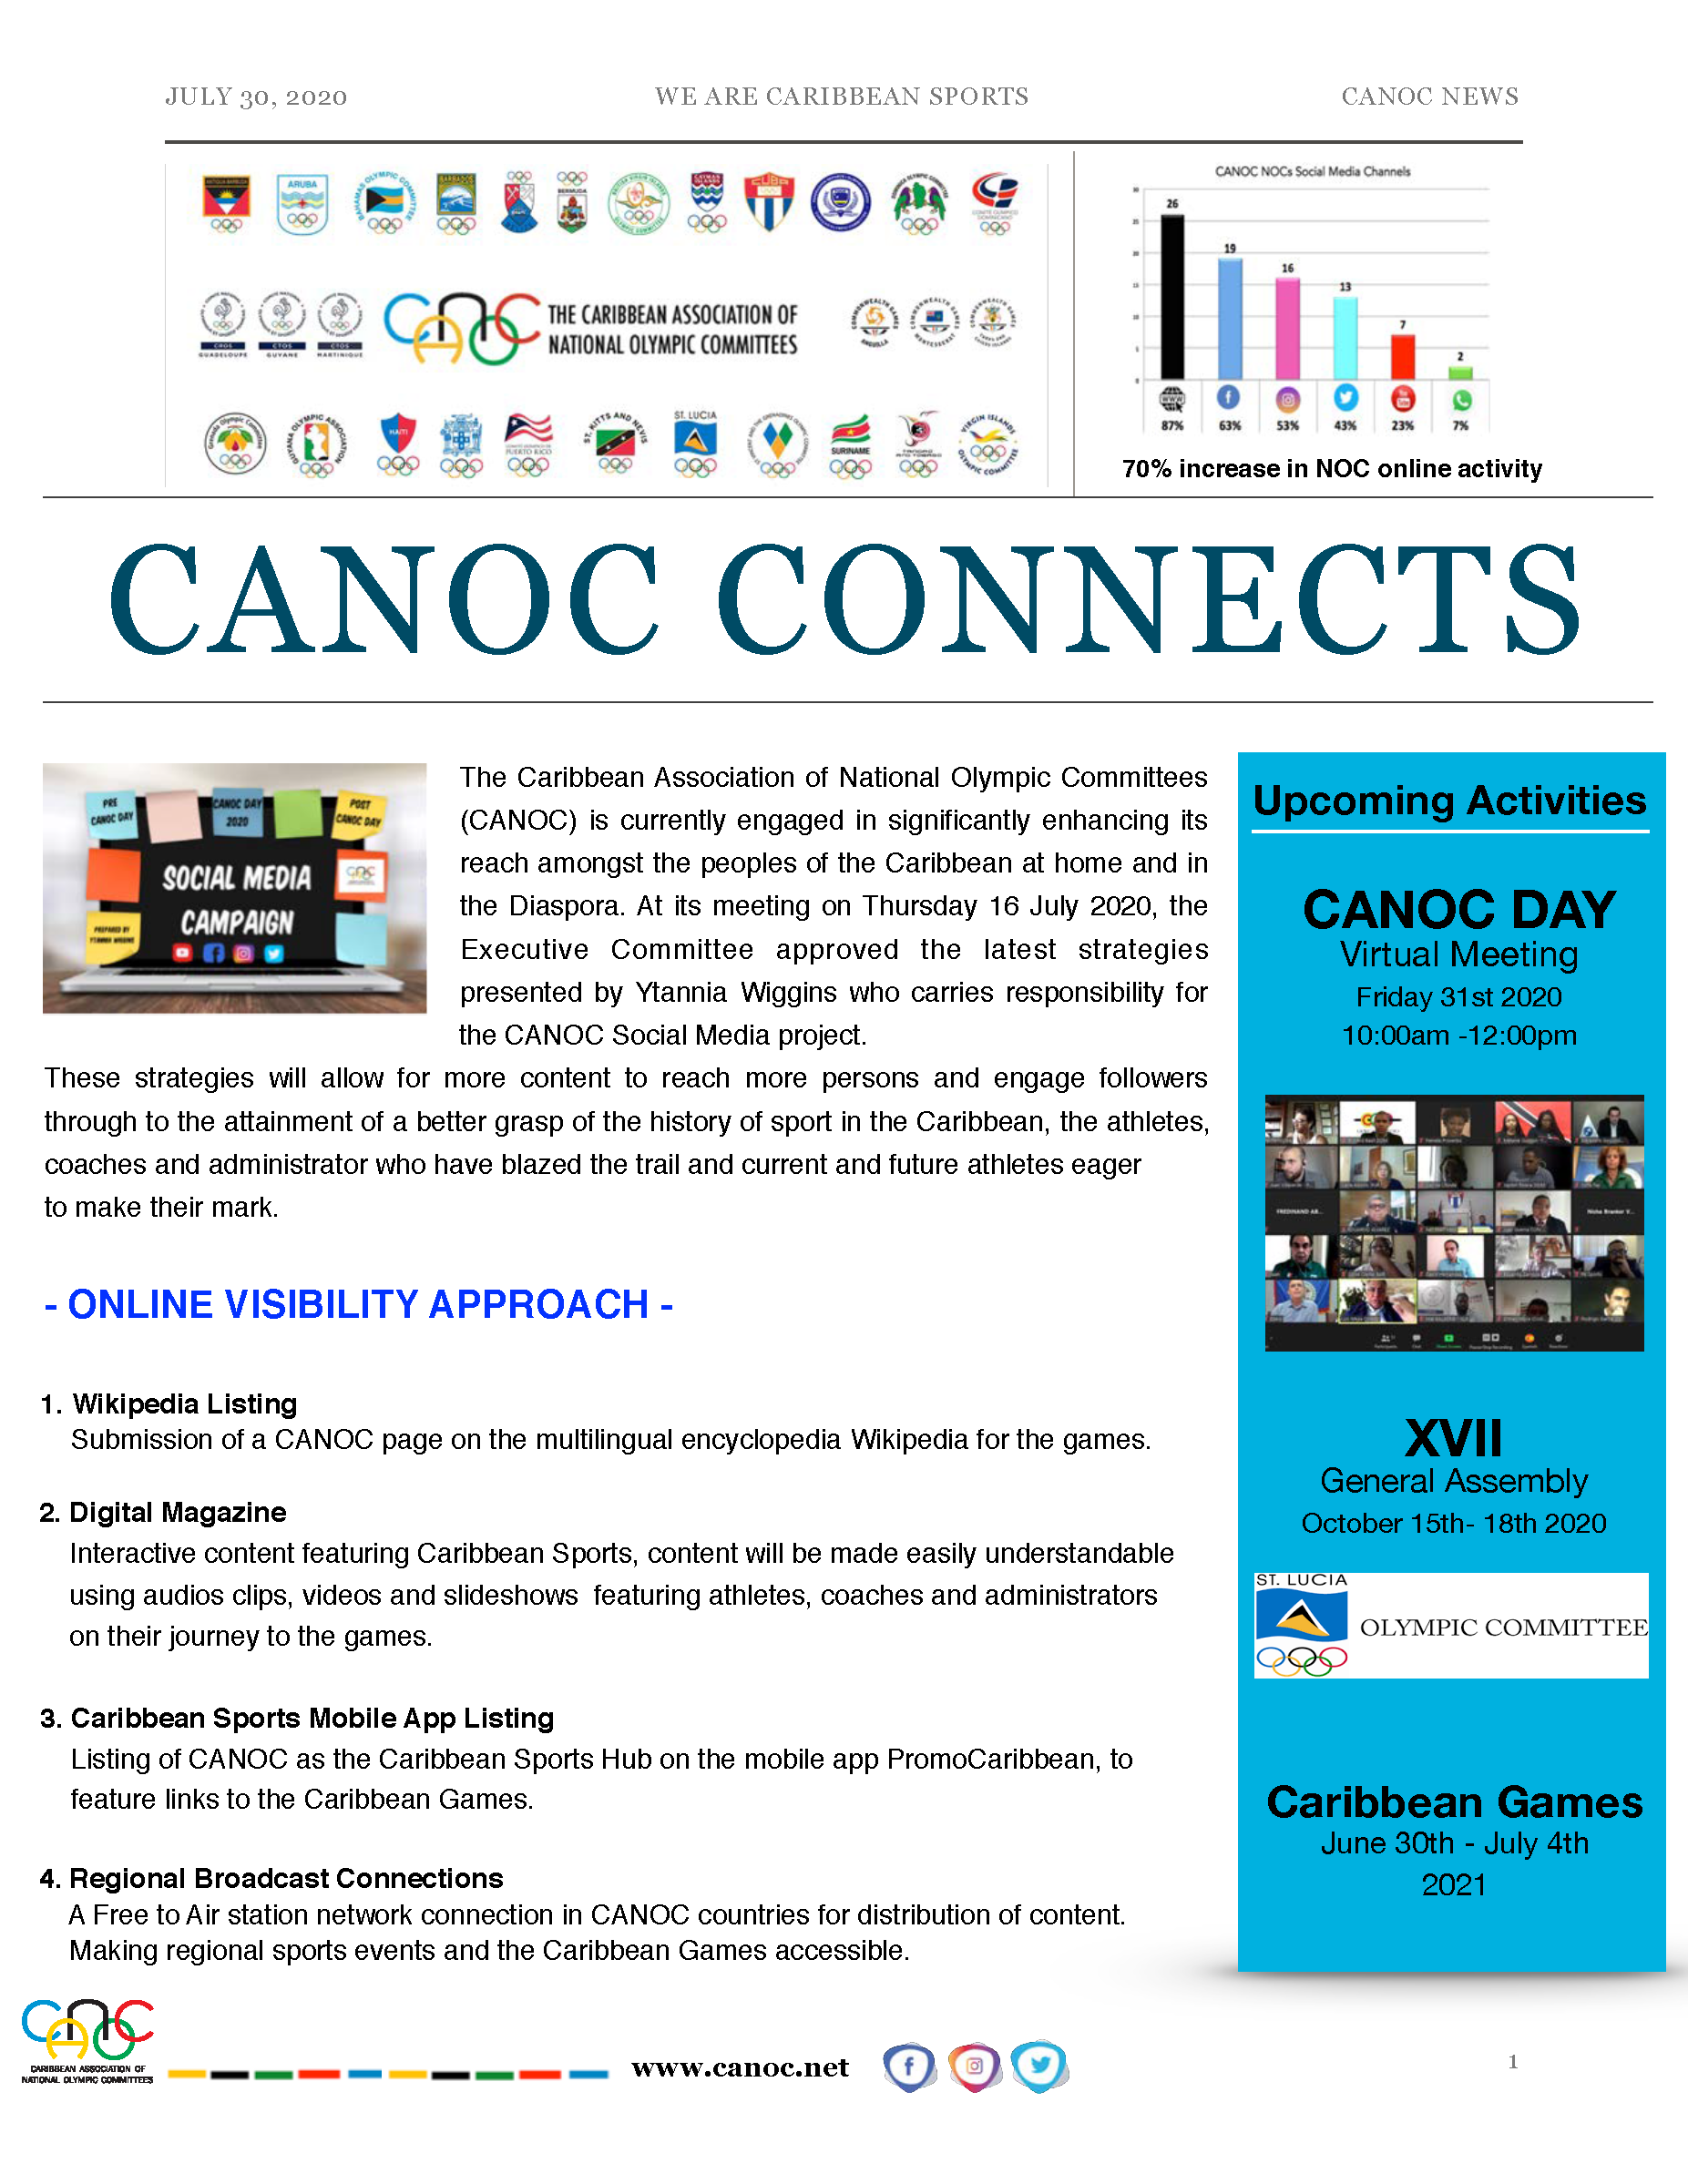 CANOC CONNECTS - CANOC News July31,2020_Page_1